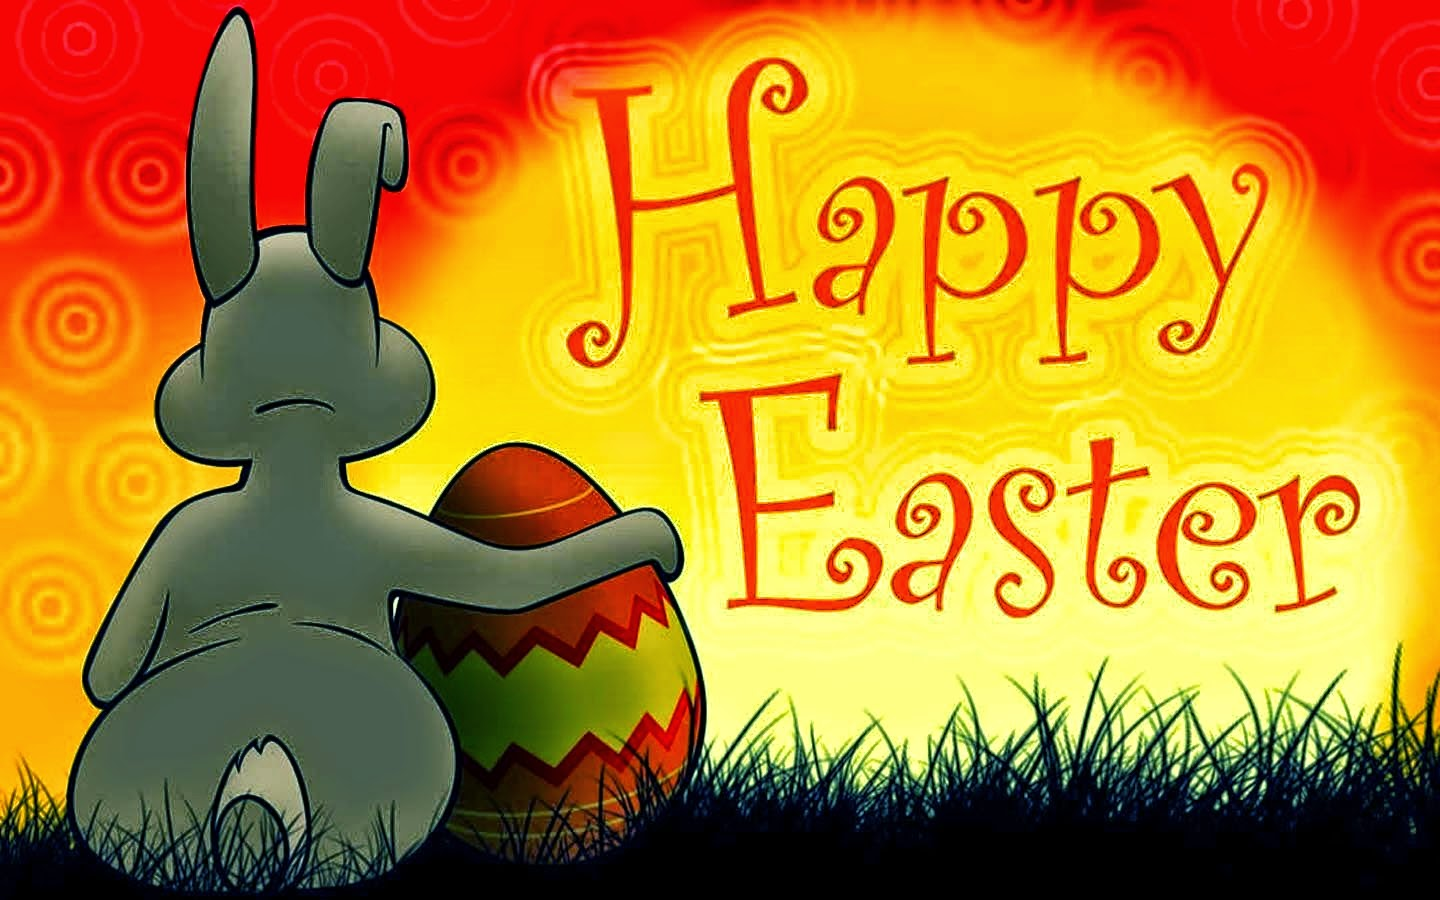 Easter greeting messages family merry christmas and happy new easter greeting messages family kristyandbryce Image collections